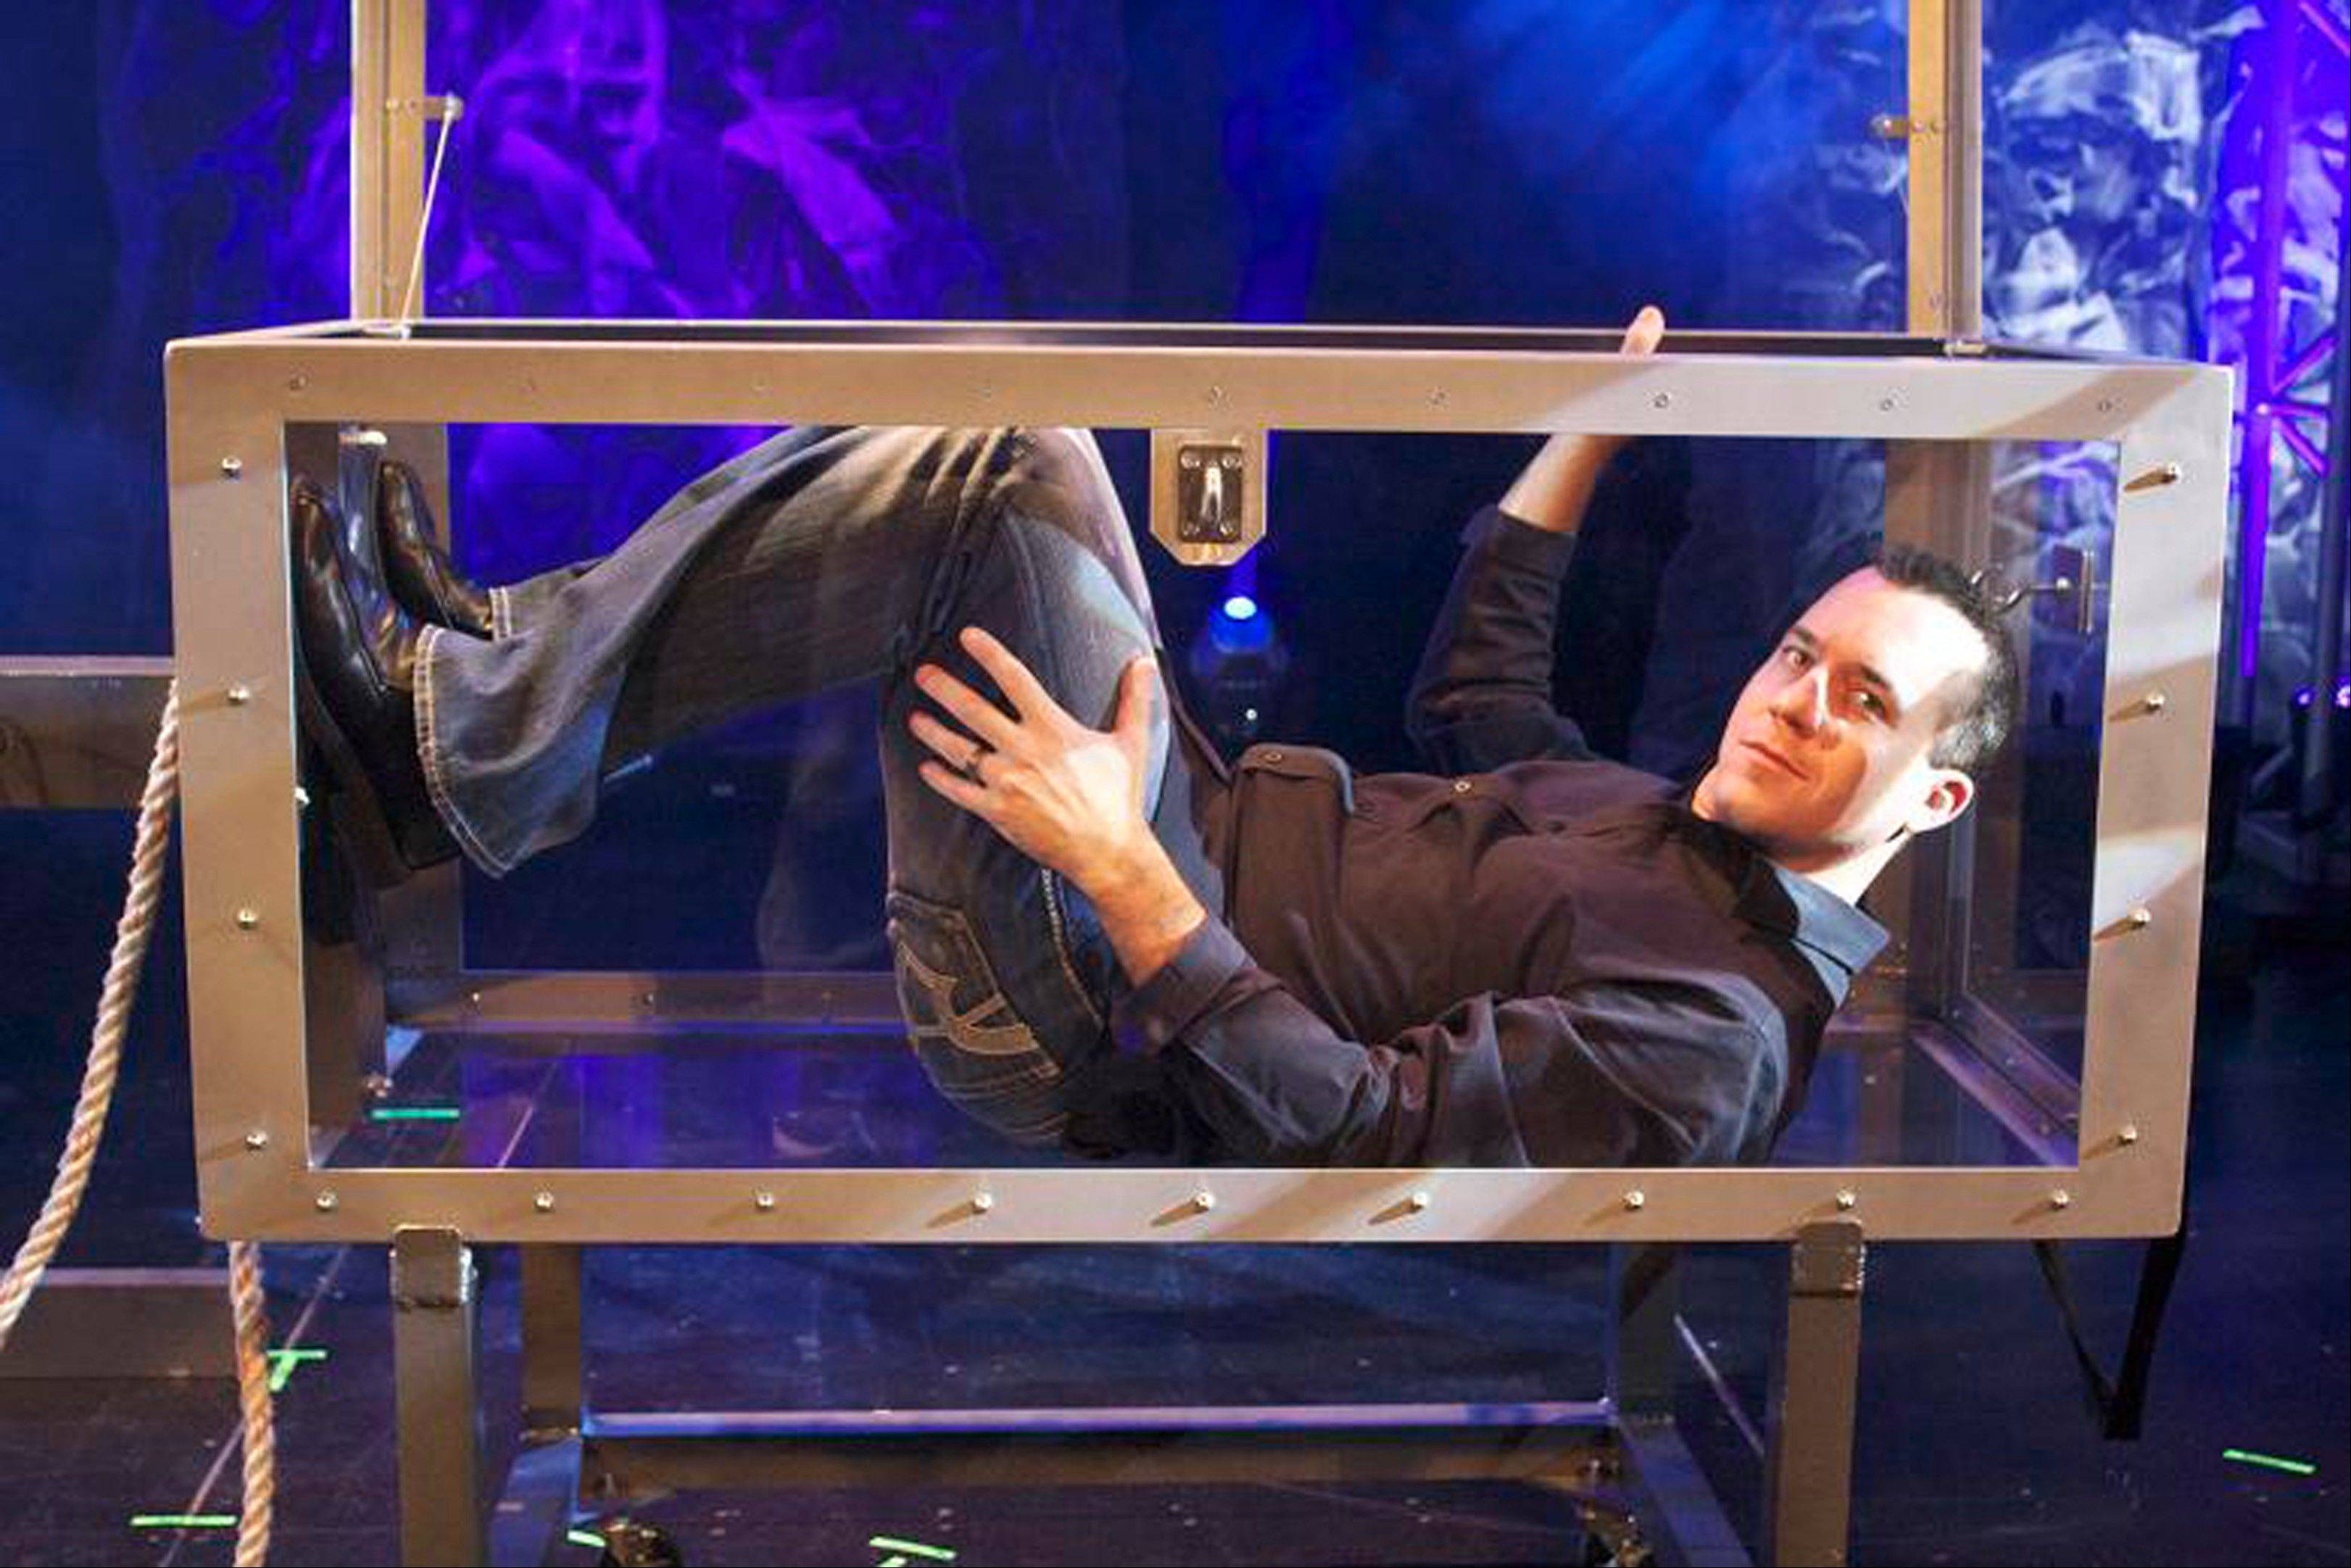 Zion native Bill Blagg will perform feats of magic and illusion during his show Saturday in Aurora.